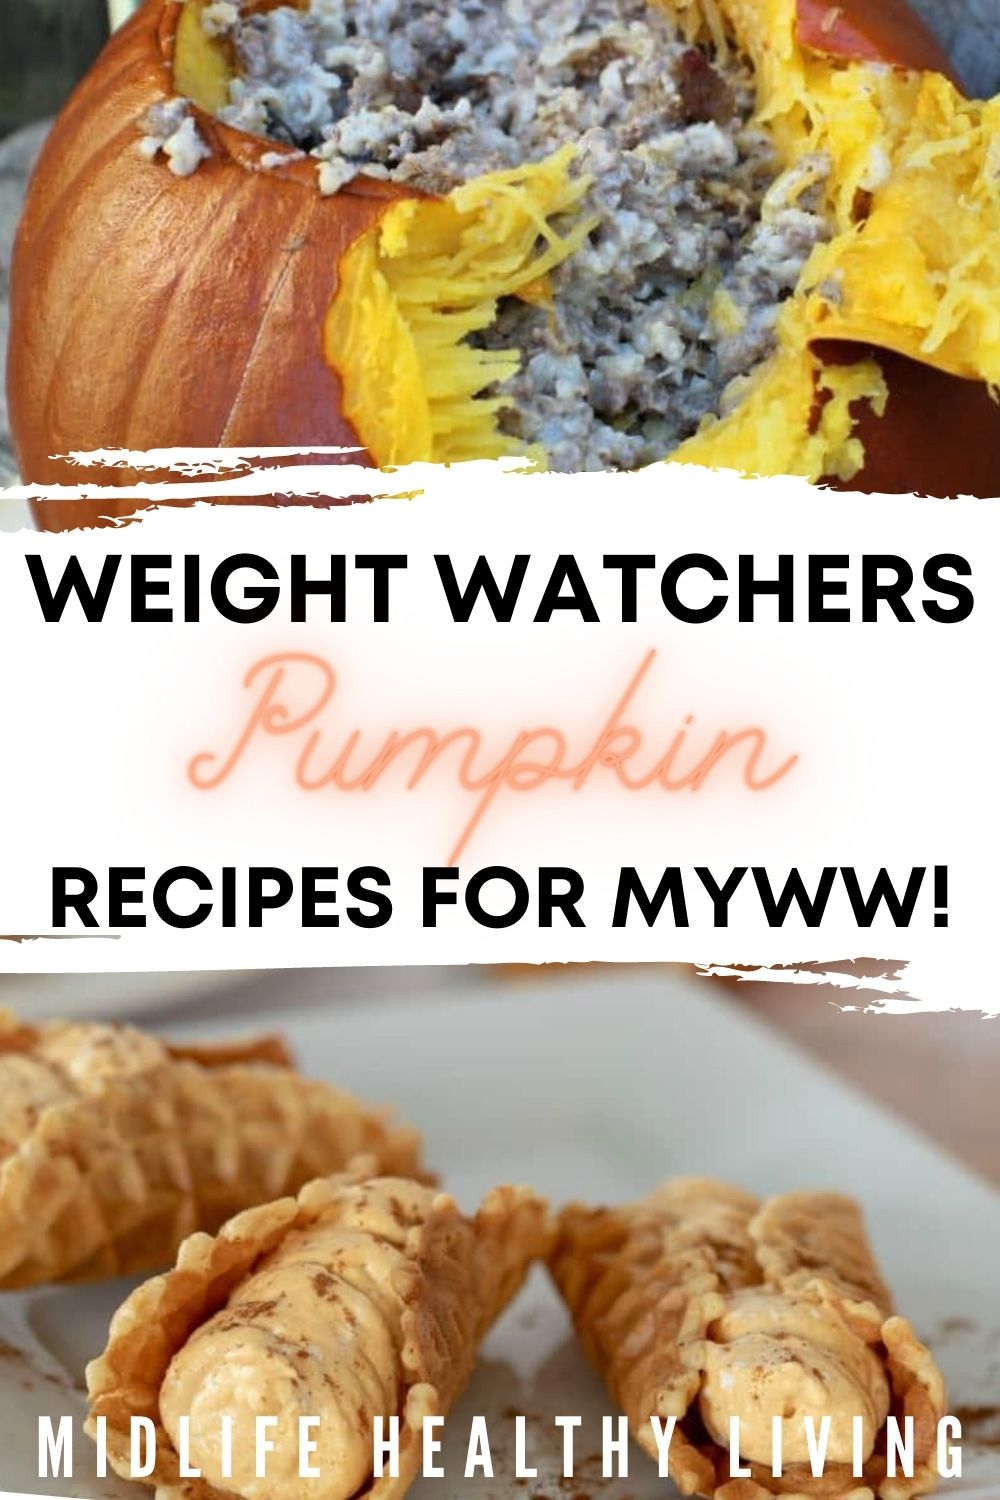 Pin showing some of the weight watchers pumpkin recipes ready to eat with title across the middle.